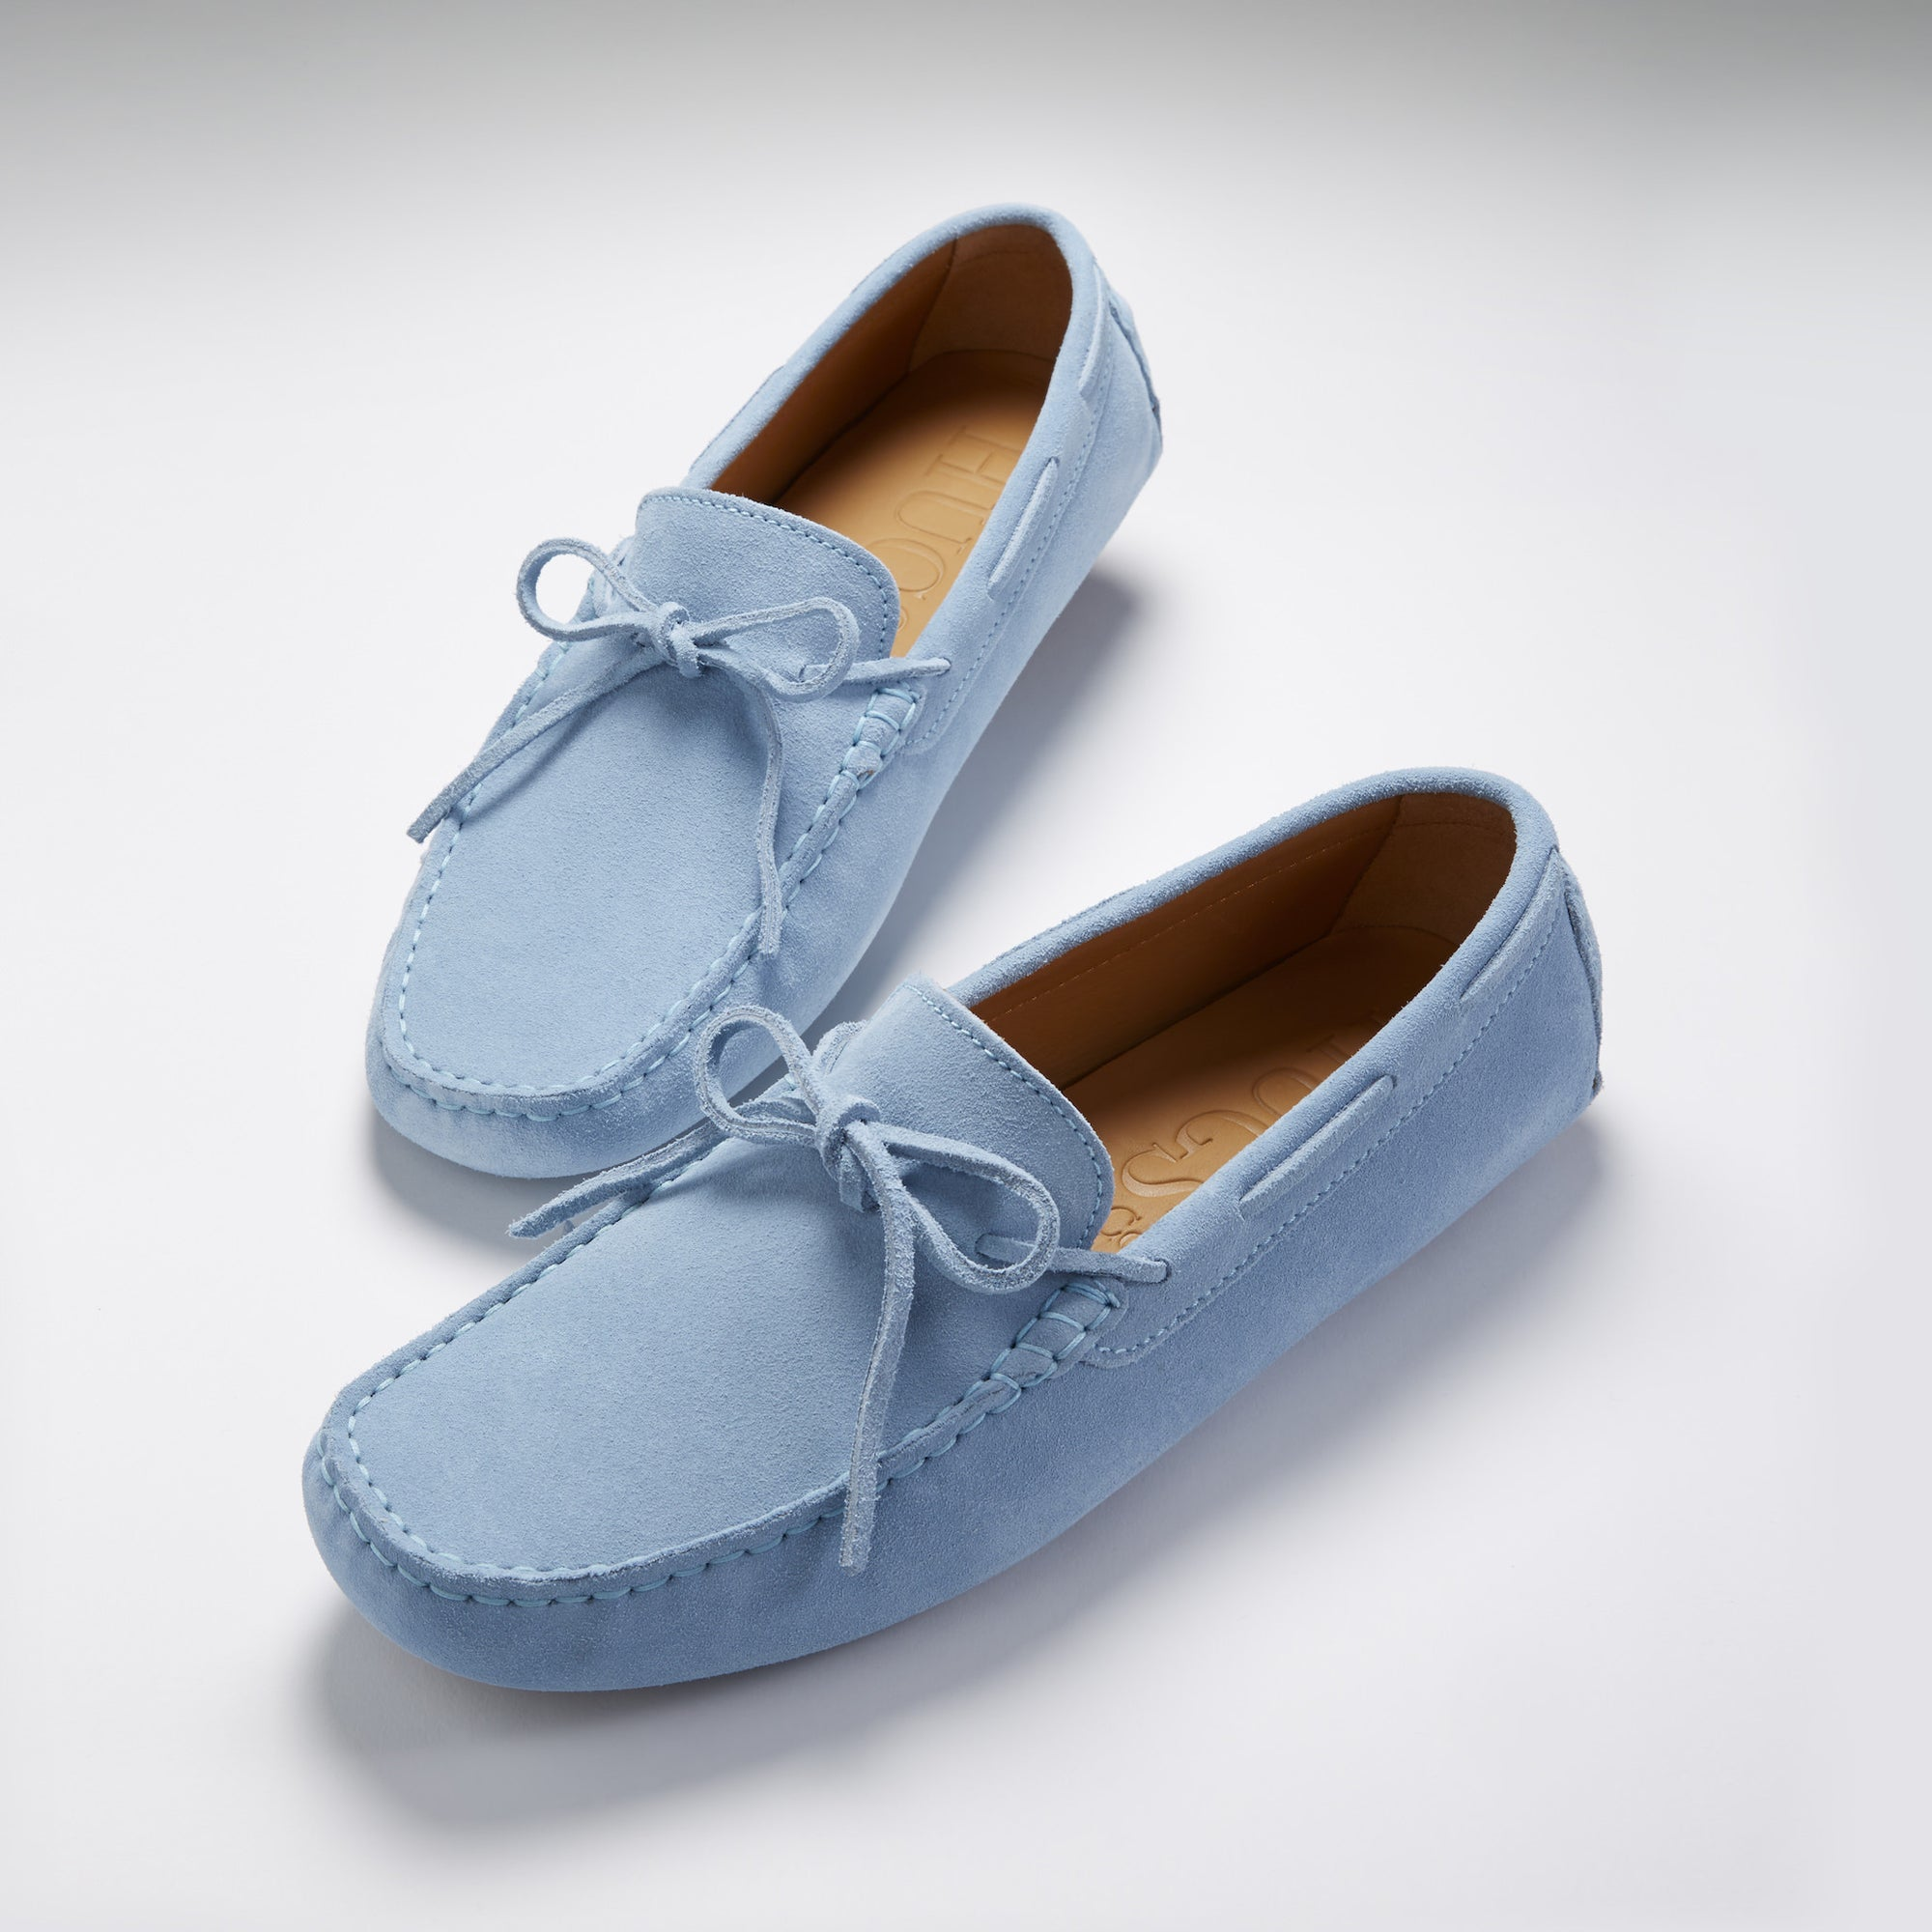 Laced Driving Loafers, sky blue suede